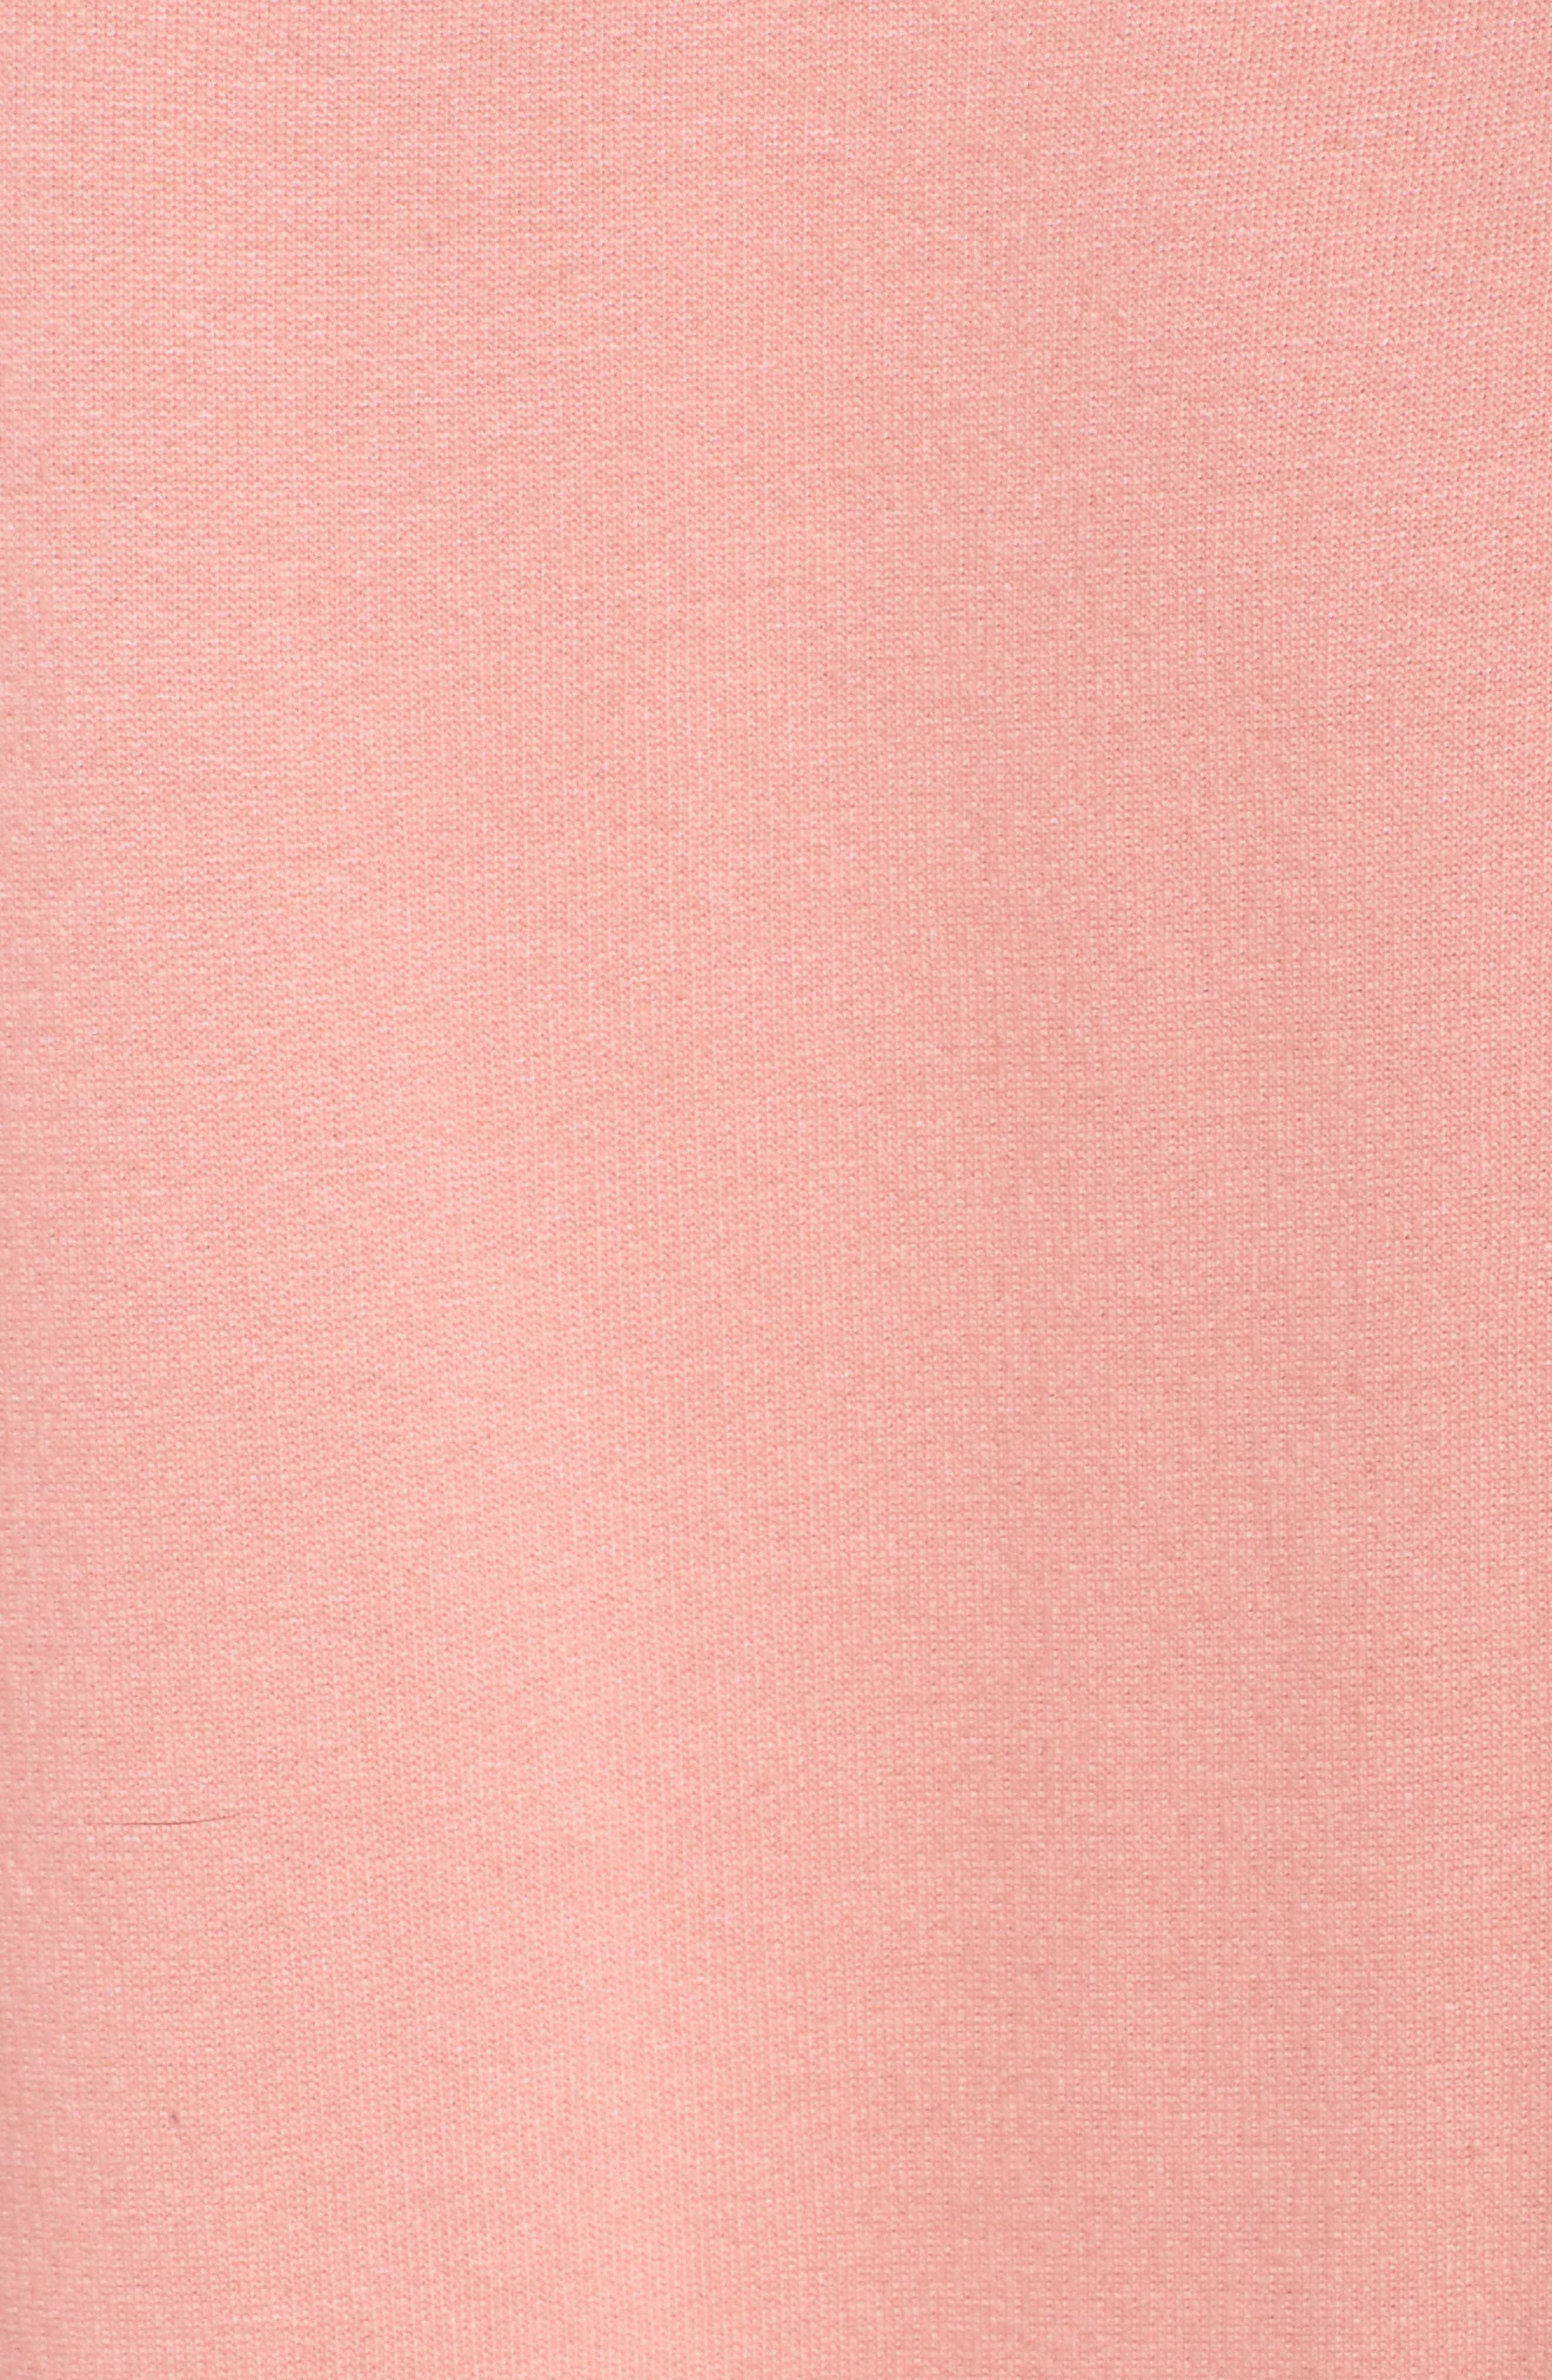 Blonde Crewneck Sweatshirt,                             Alternate thumbnail 6, color,                             Dusty Rose